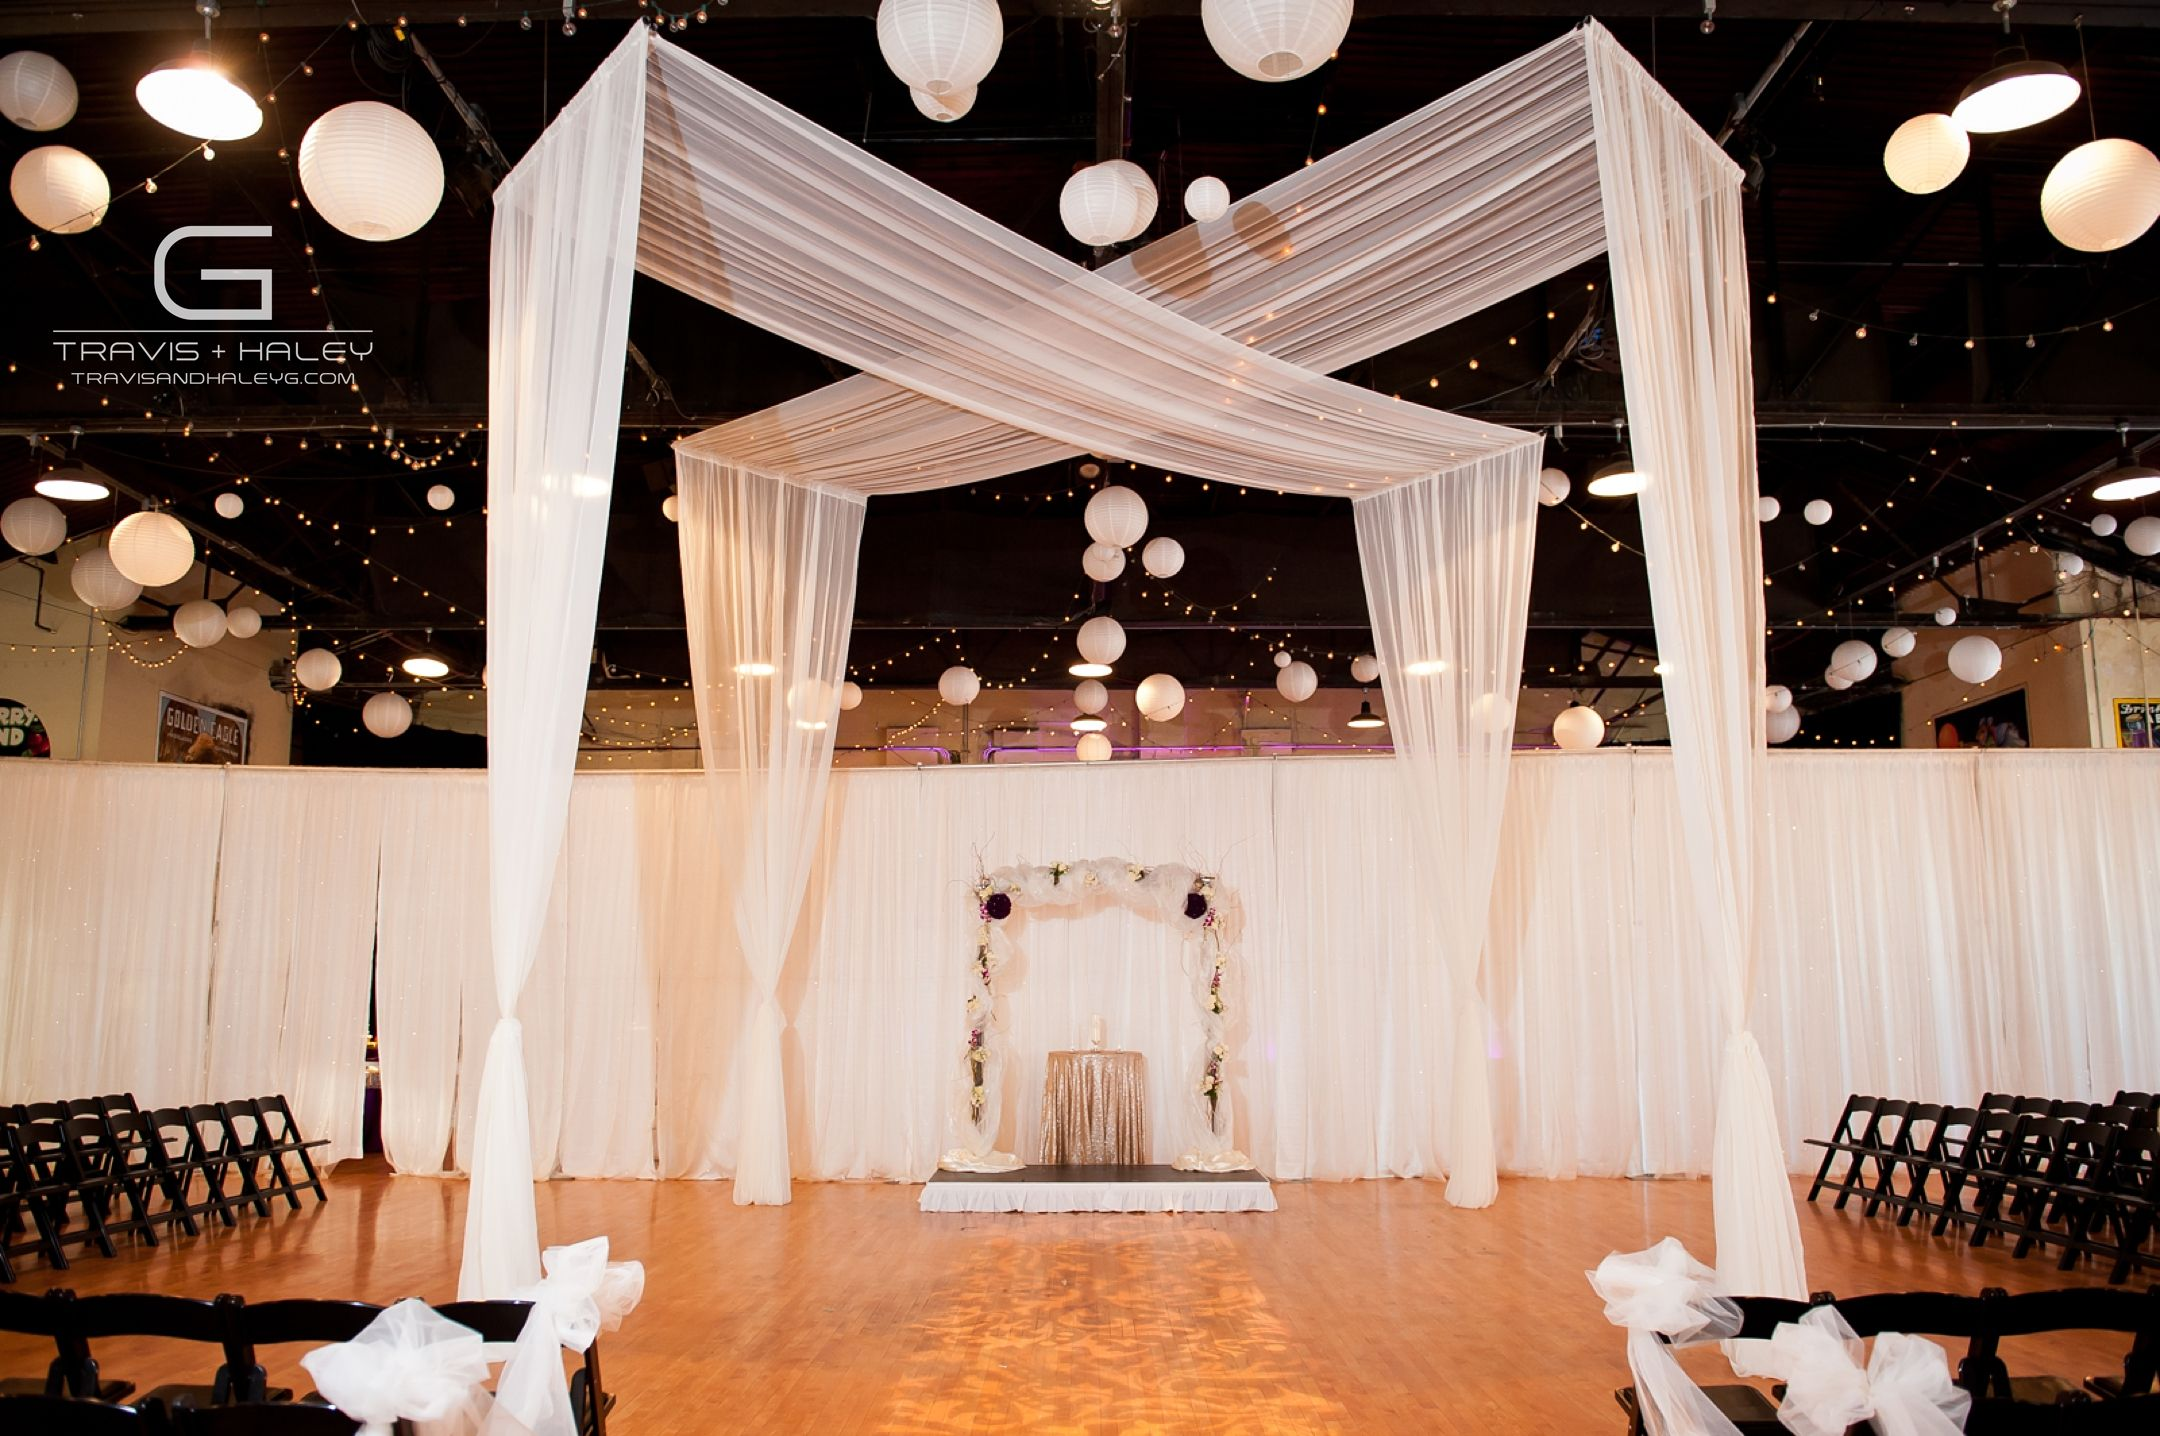 drape pipe hang lighting ceiling door room to grand events draping fabric backdrop michigan prix how for click drapery ceilings drapes